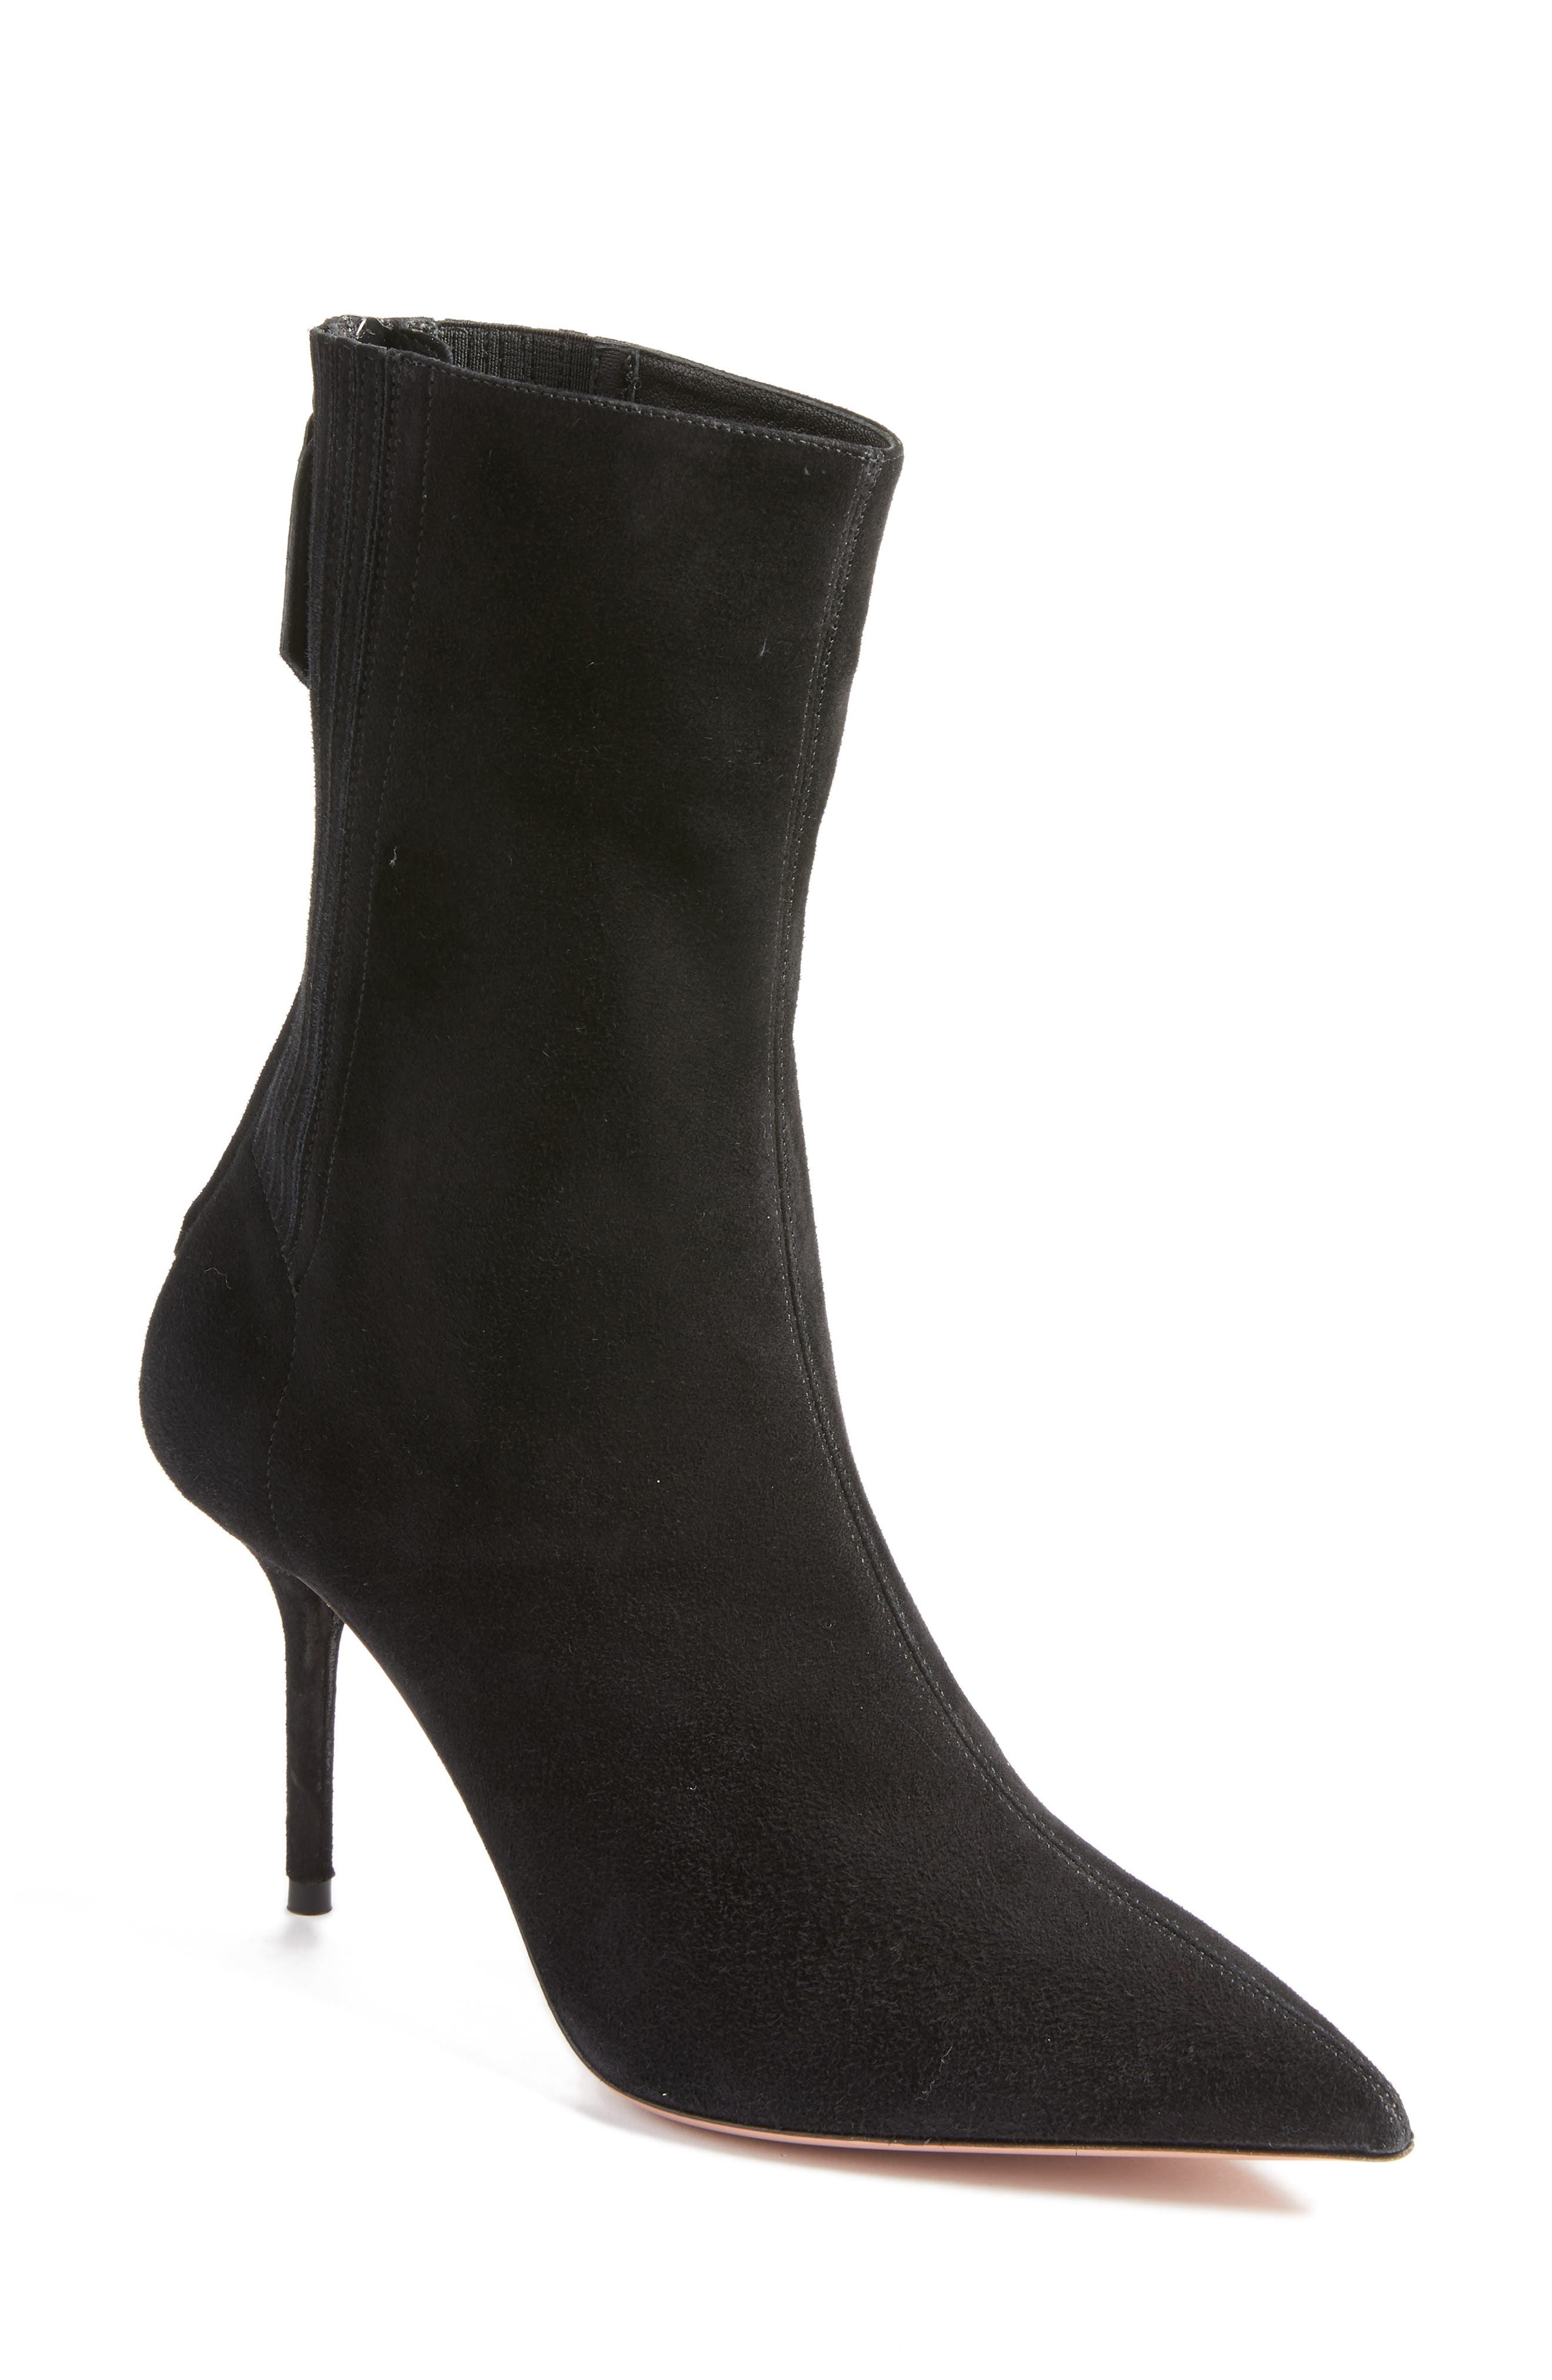 Aquazzura Saint Honore Pointy Toe Bootie (Women)